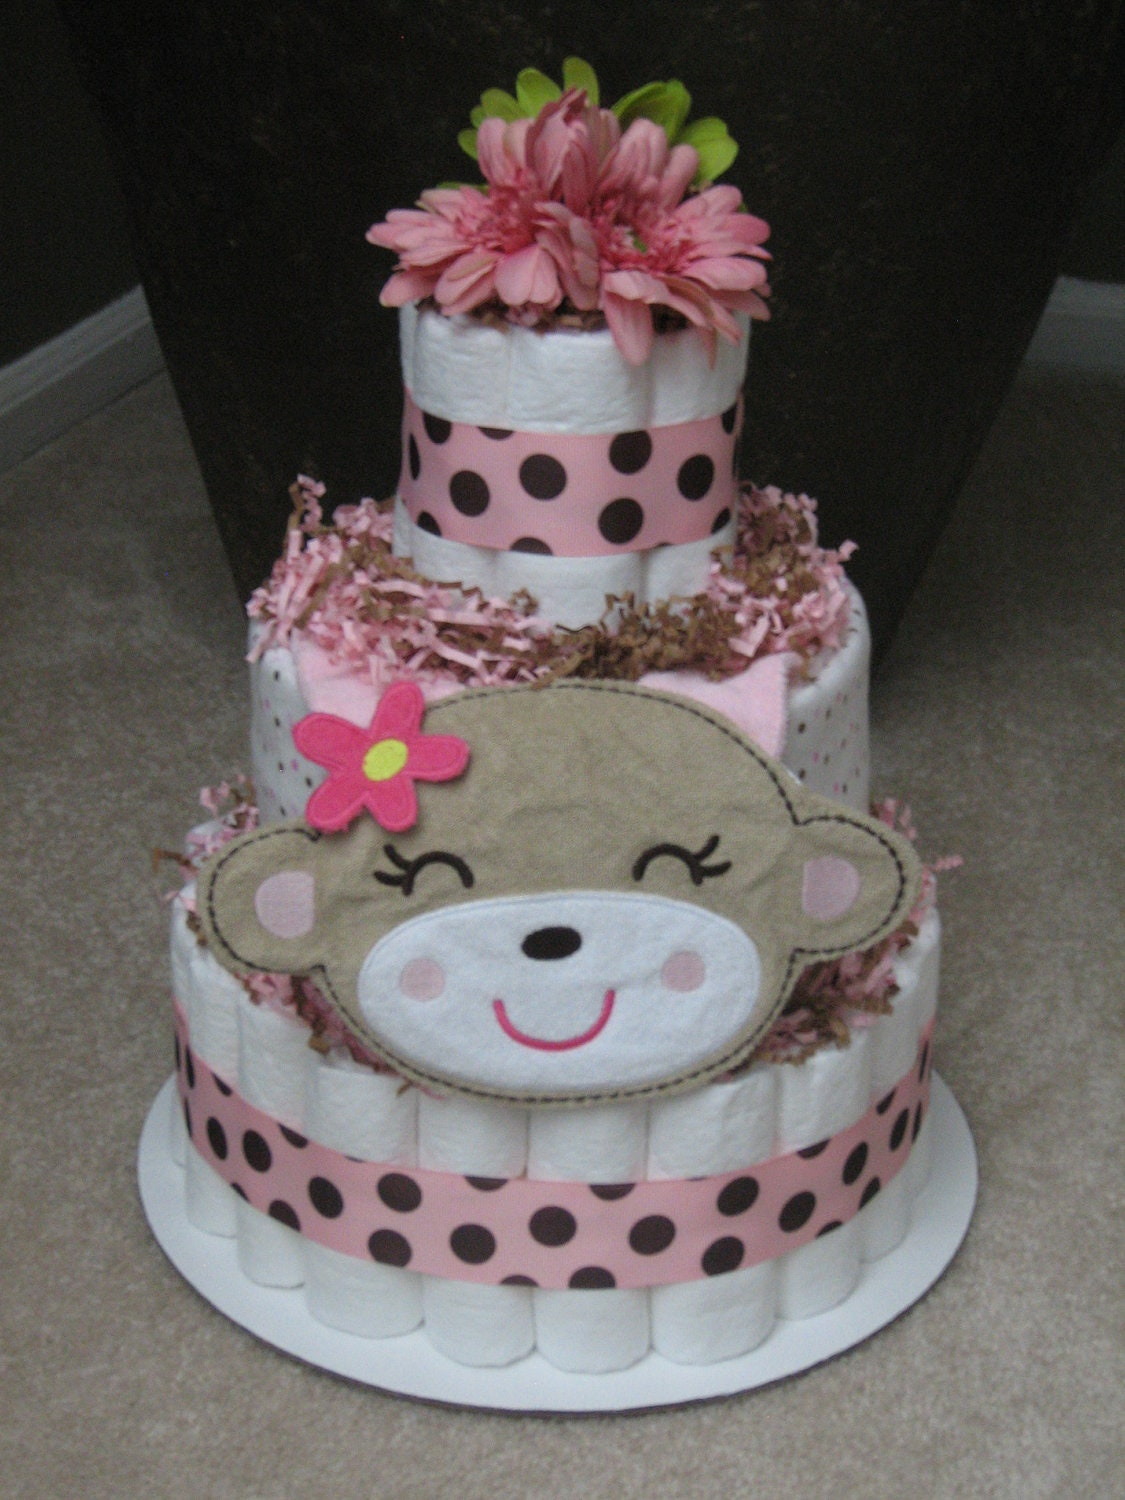 Diaper Cake Centerpiece For Baby Shower : Kitchen & Dining